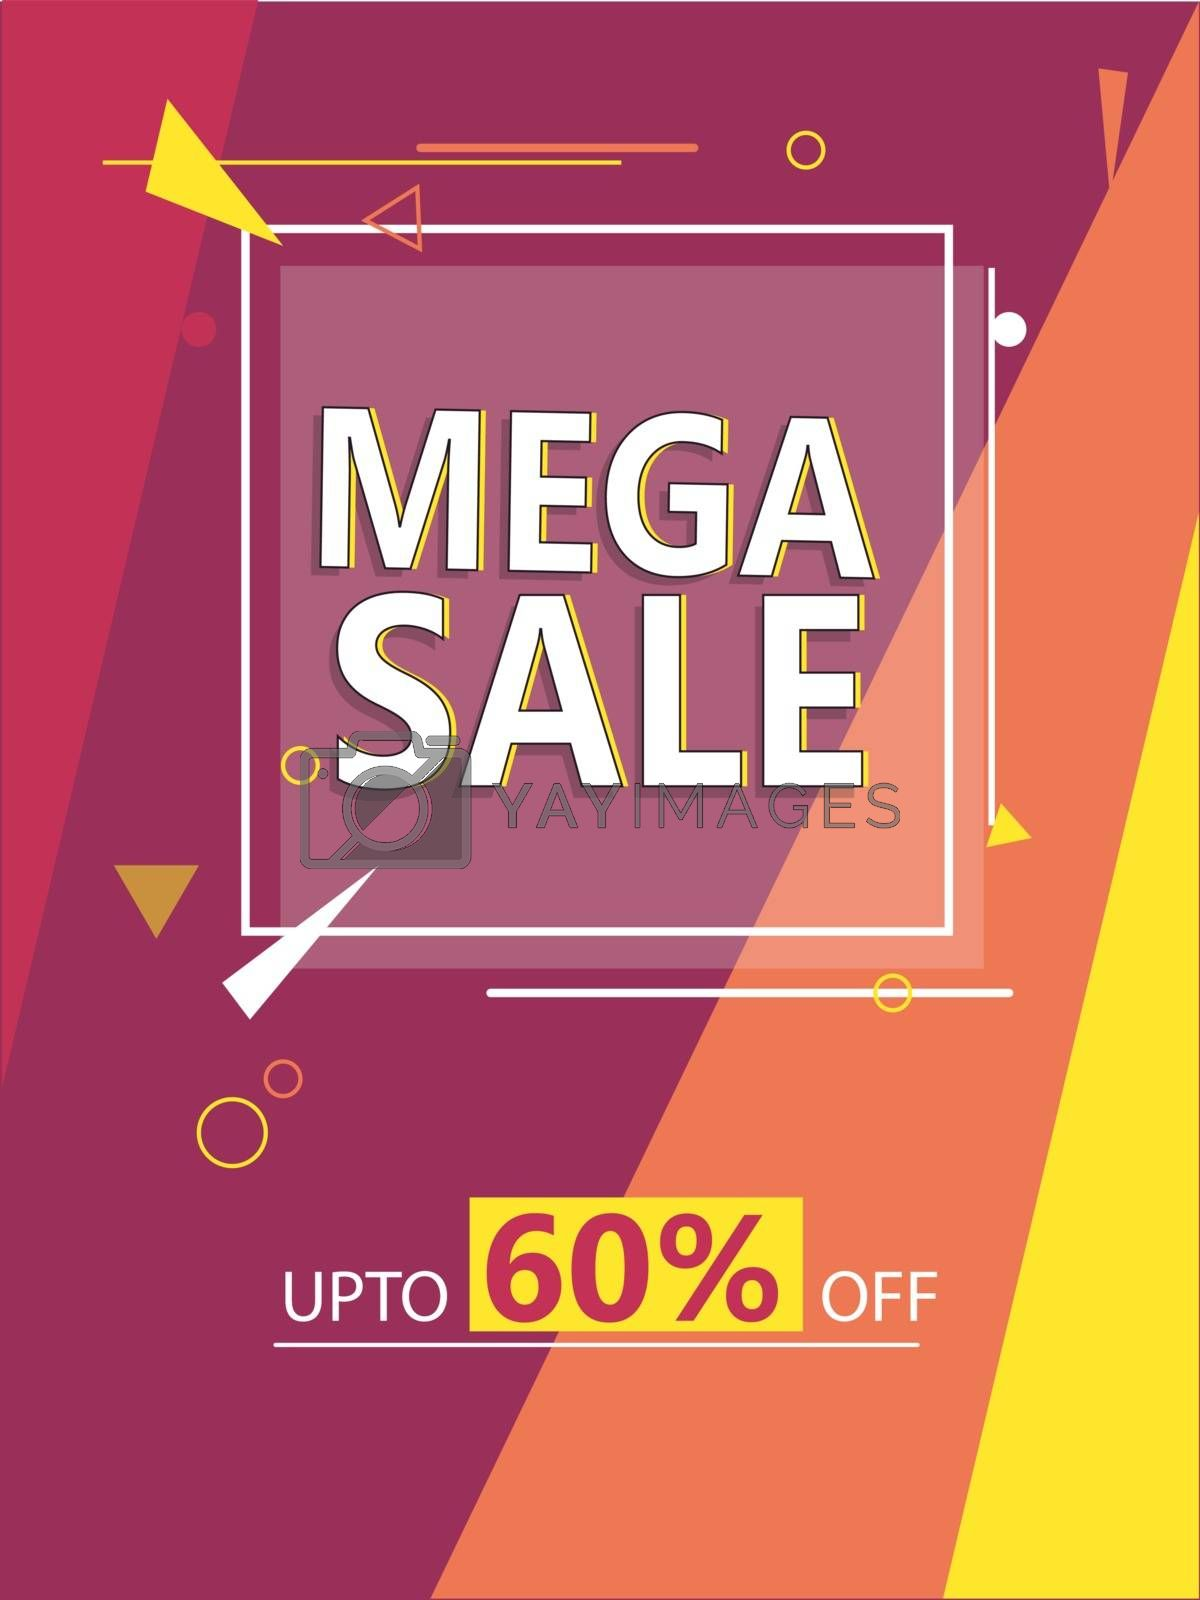 Royalty free image of Mega Sale template design with 60% discount offer on abstract ba by aispl